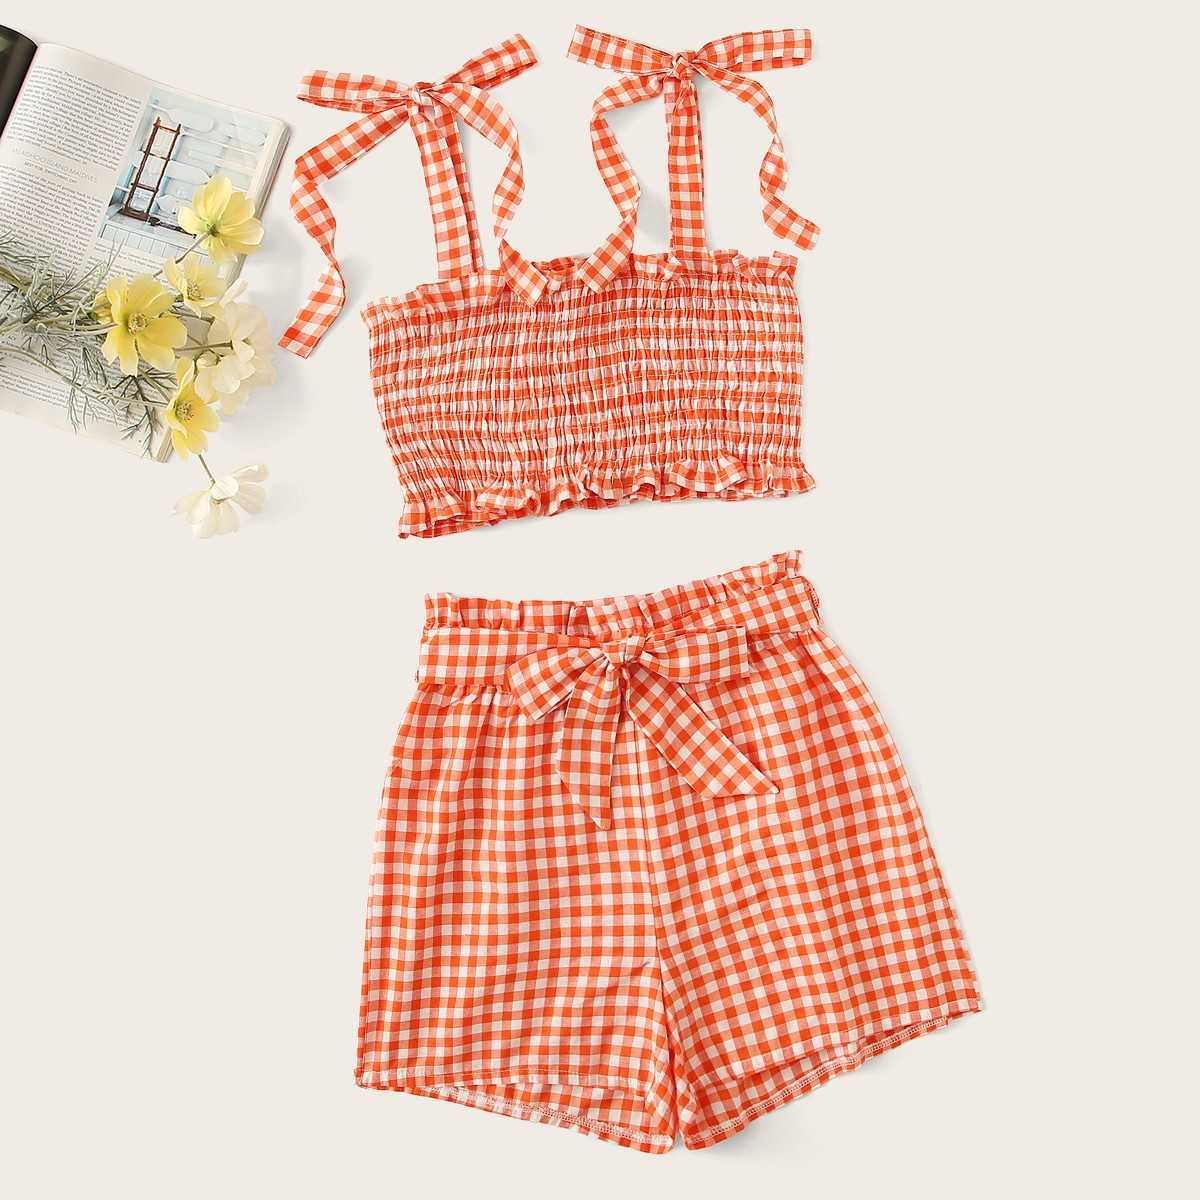 Gingham Shirred Cami Top With Belted Shorts in Orange by ROMWE on GOOFASH